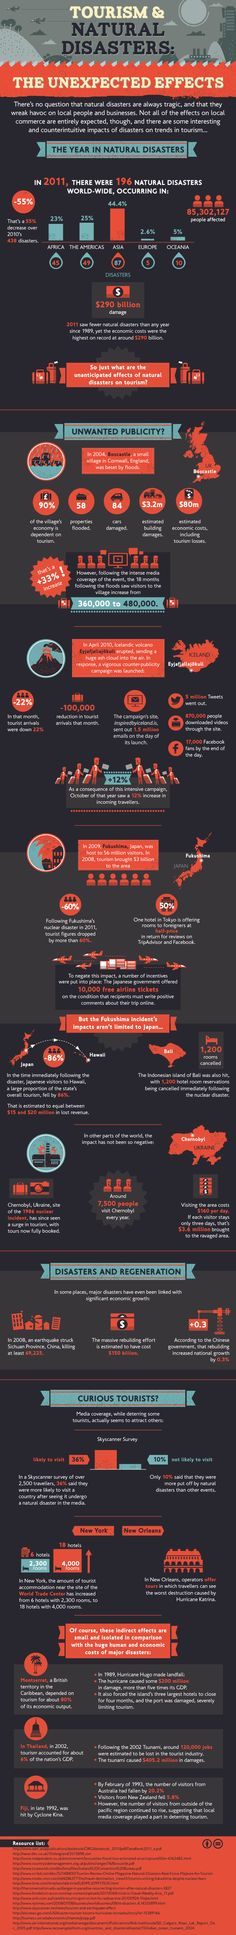 Tourism & Natural Disasters [INFOGRAPHIC]